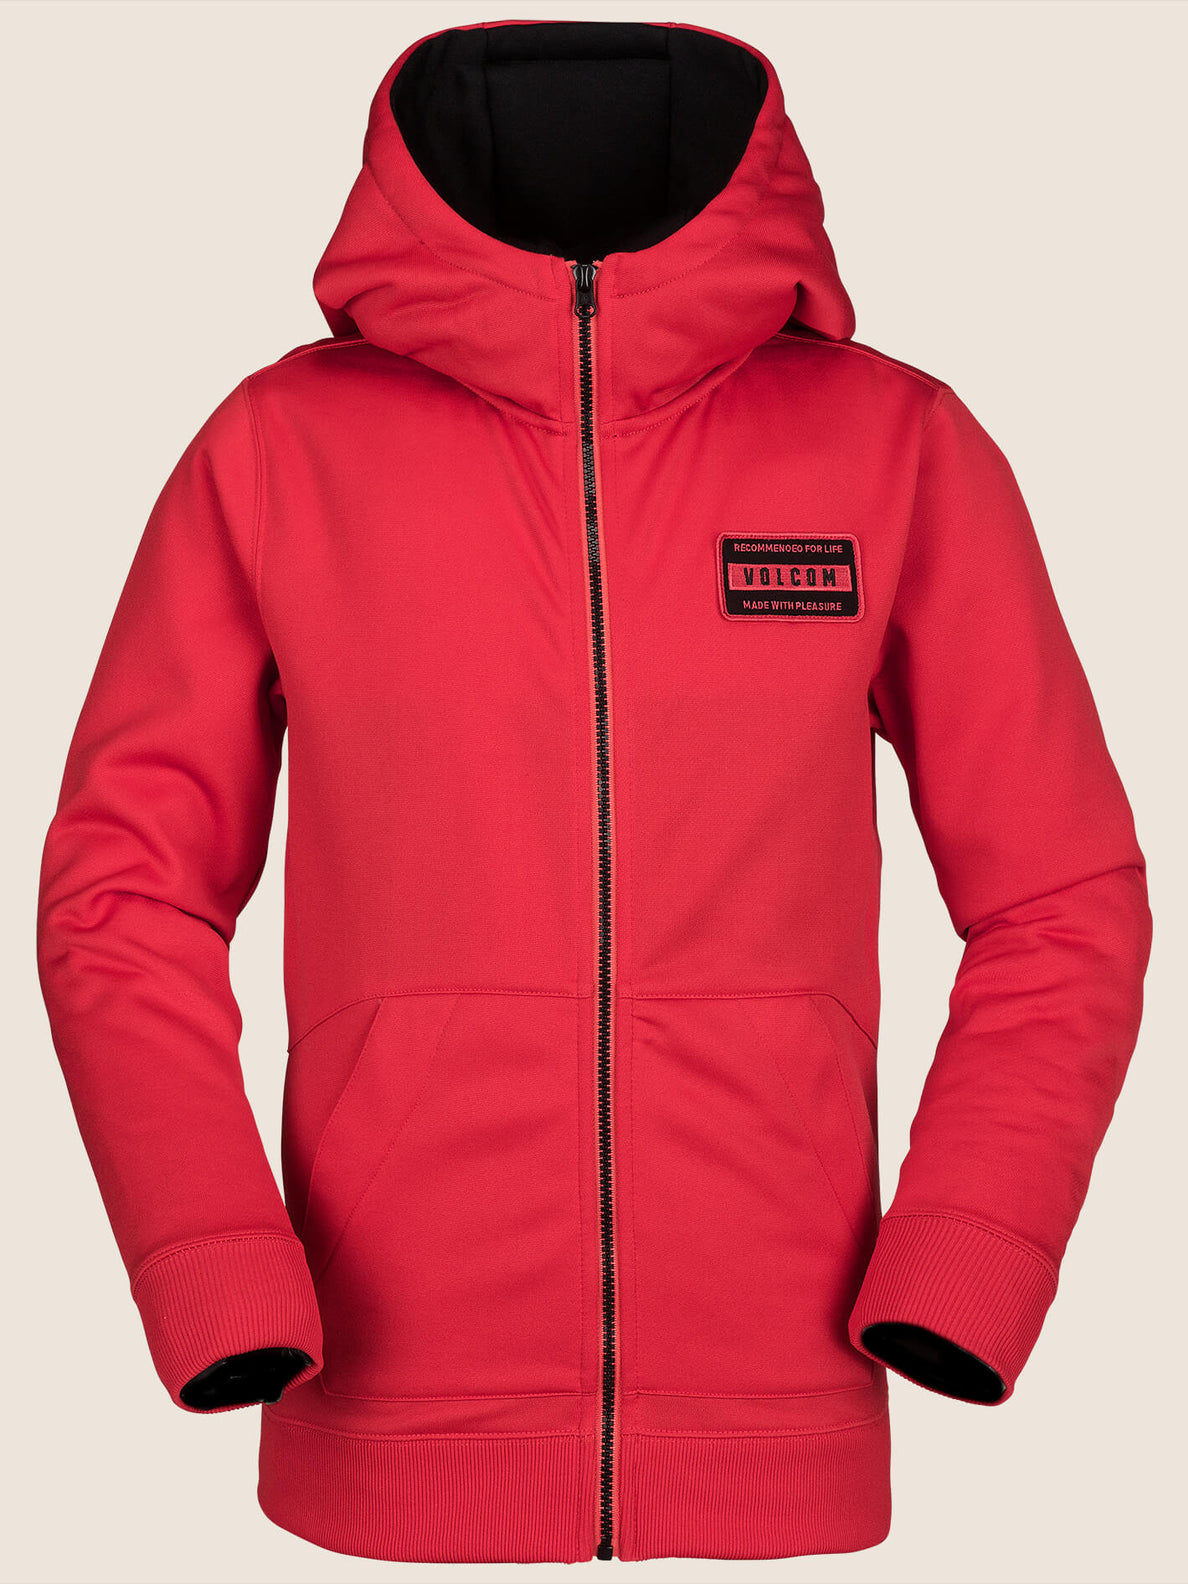 Krestova Fleece In Fire Red, Front View